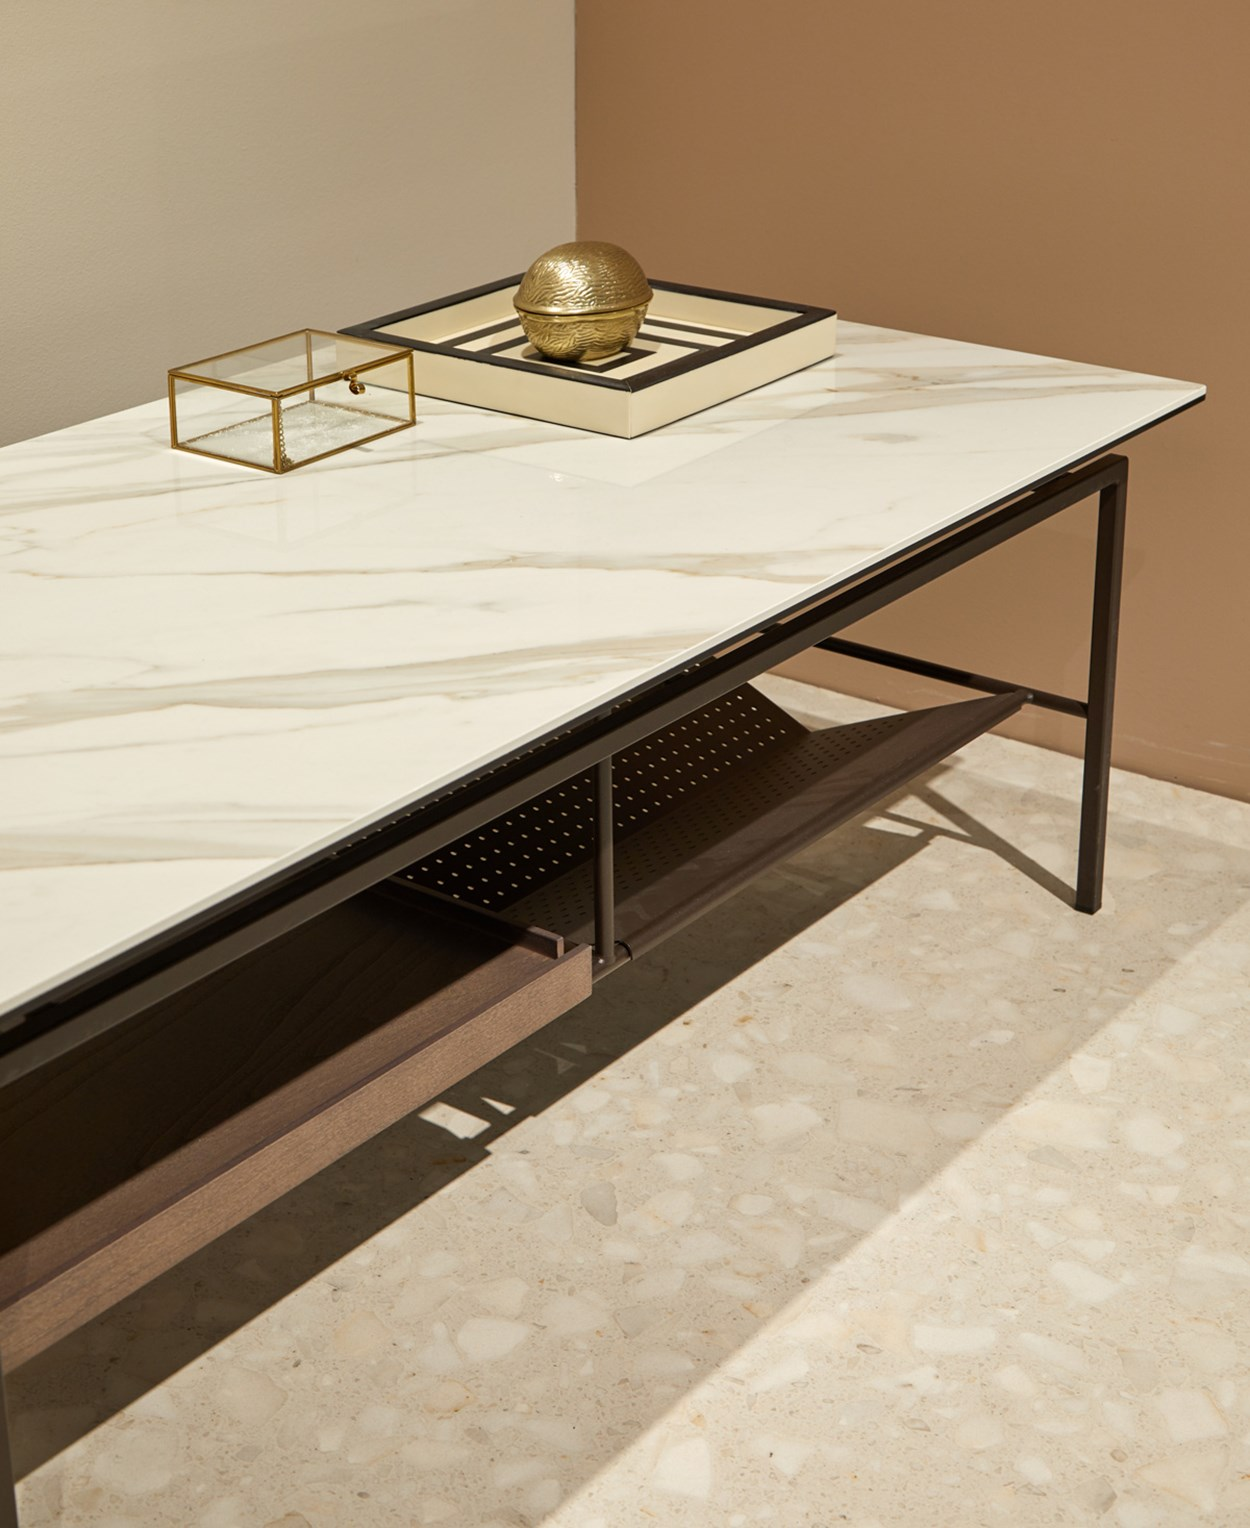 Dressy-Simone-coffee-table-02.jpg